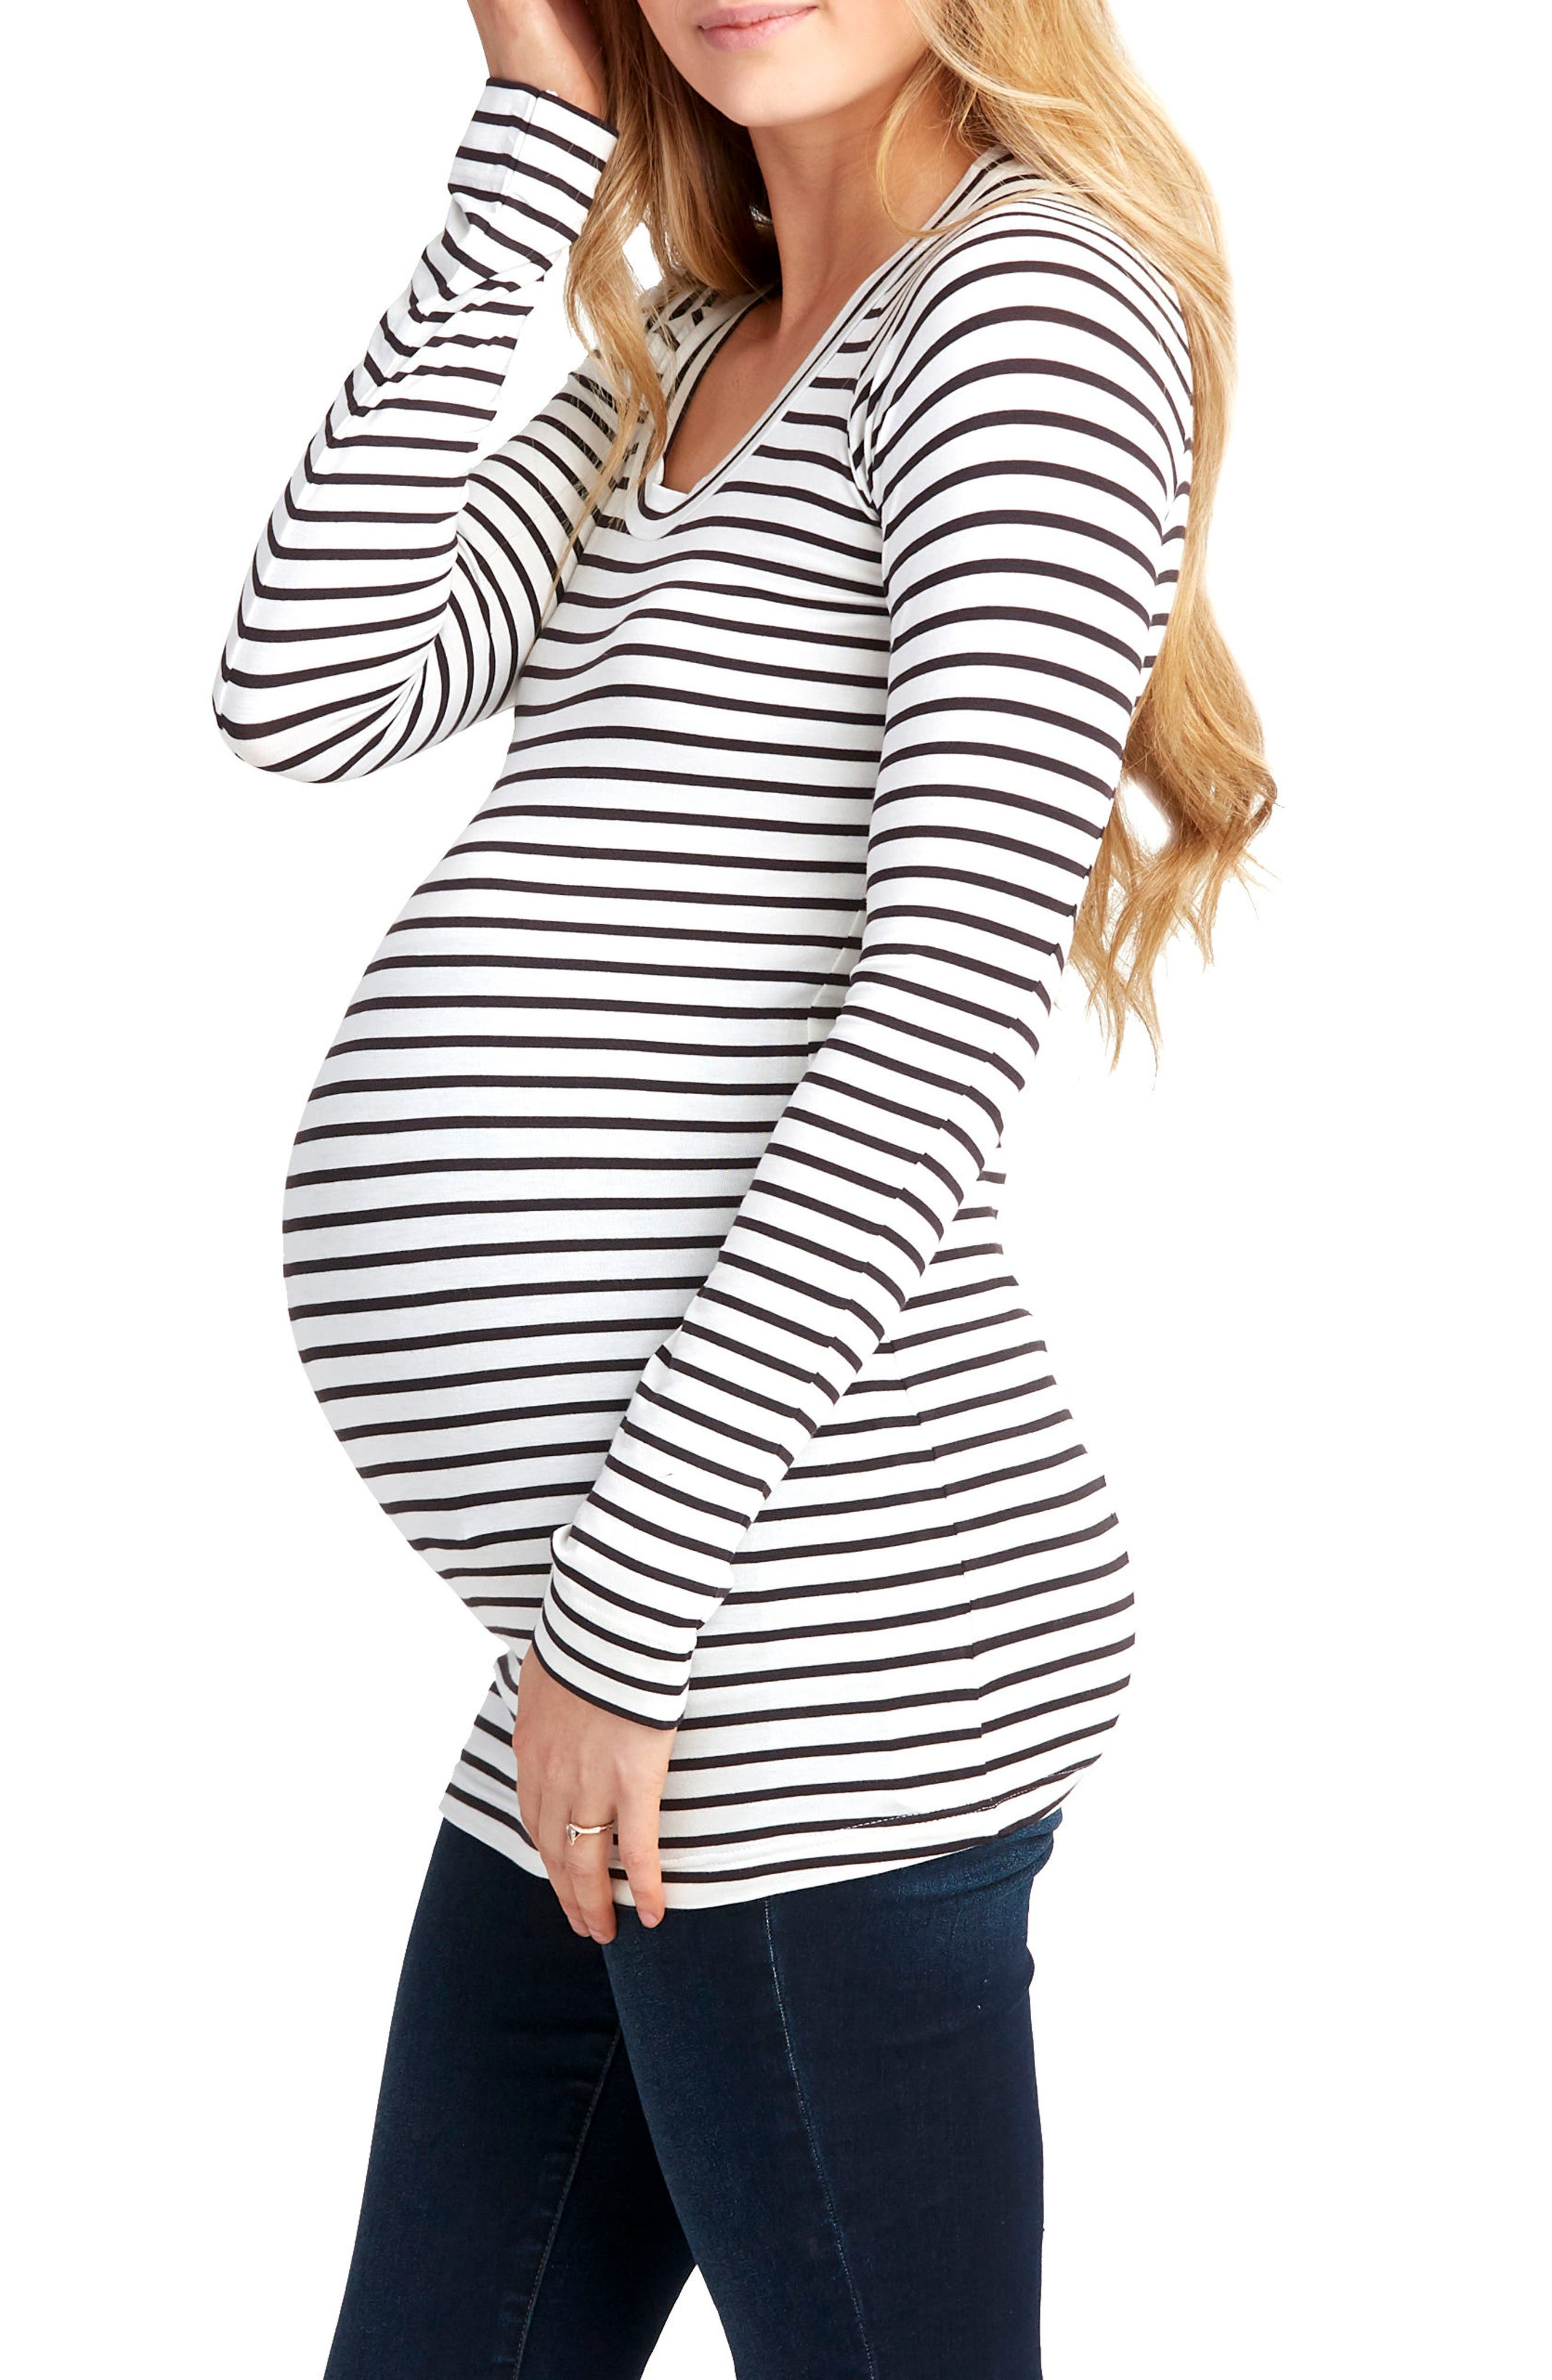 Phoebe Maternity Top,                             Alternate thumbnail 3, color,                             BLACK AND WHITE STRIPE